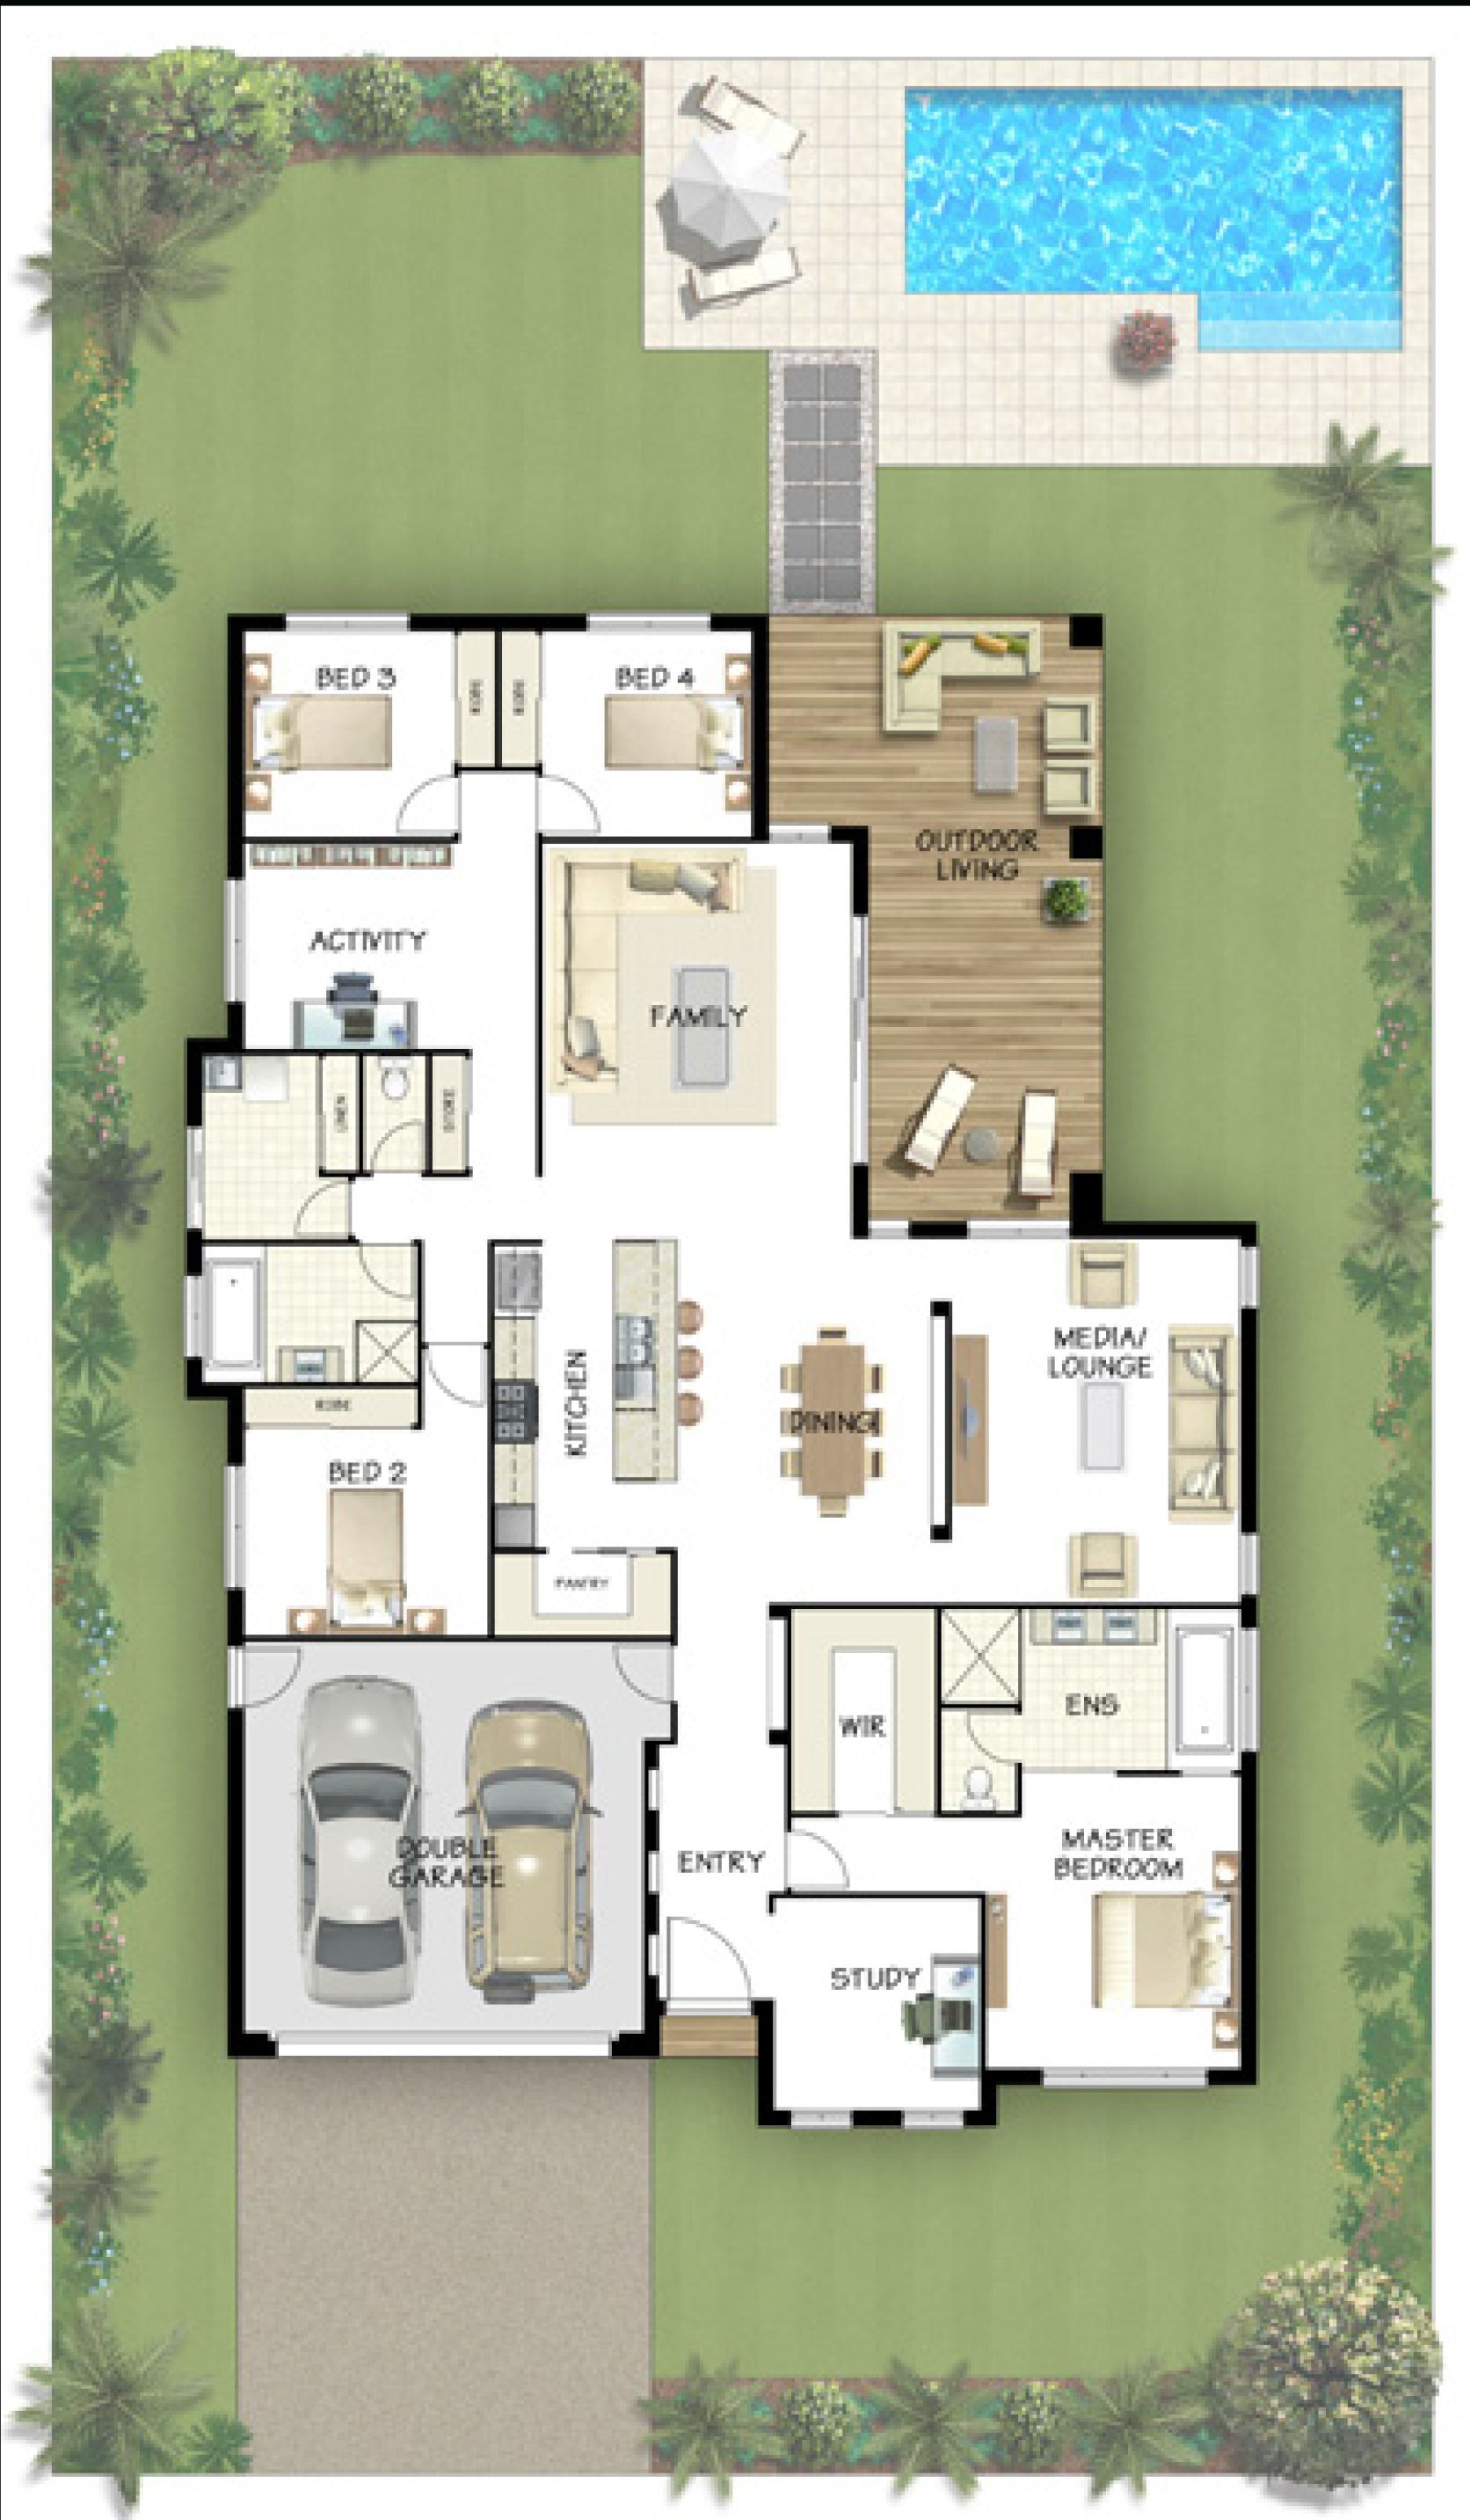 Master Bedroom Floor Plan Turn The Great Room Around And Place A Two Sided Fireplace Between